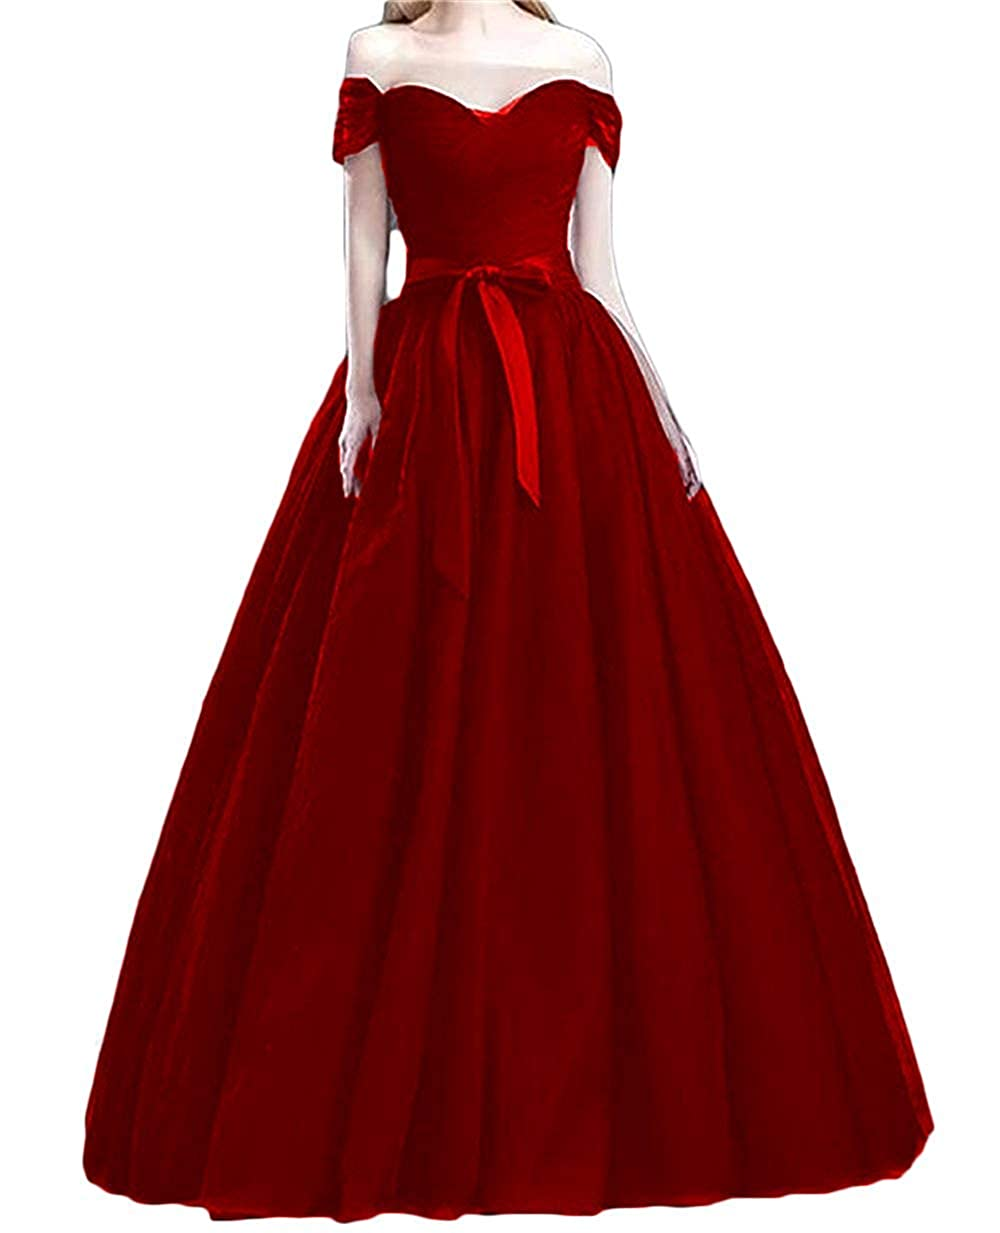 Burgundy XKYU Women's Off The Shoulder Prom Evening Party Dresses Tulle Long Formal Ball Gowns